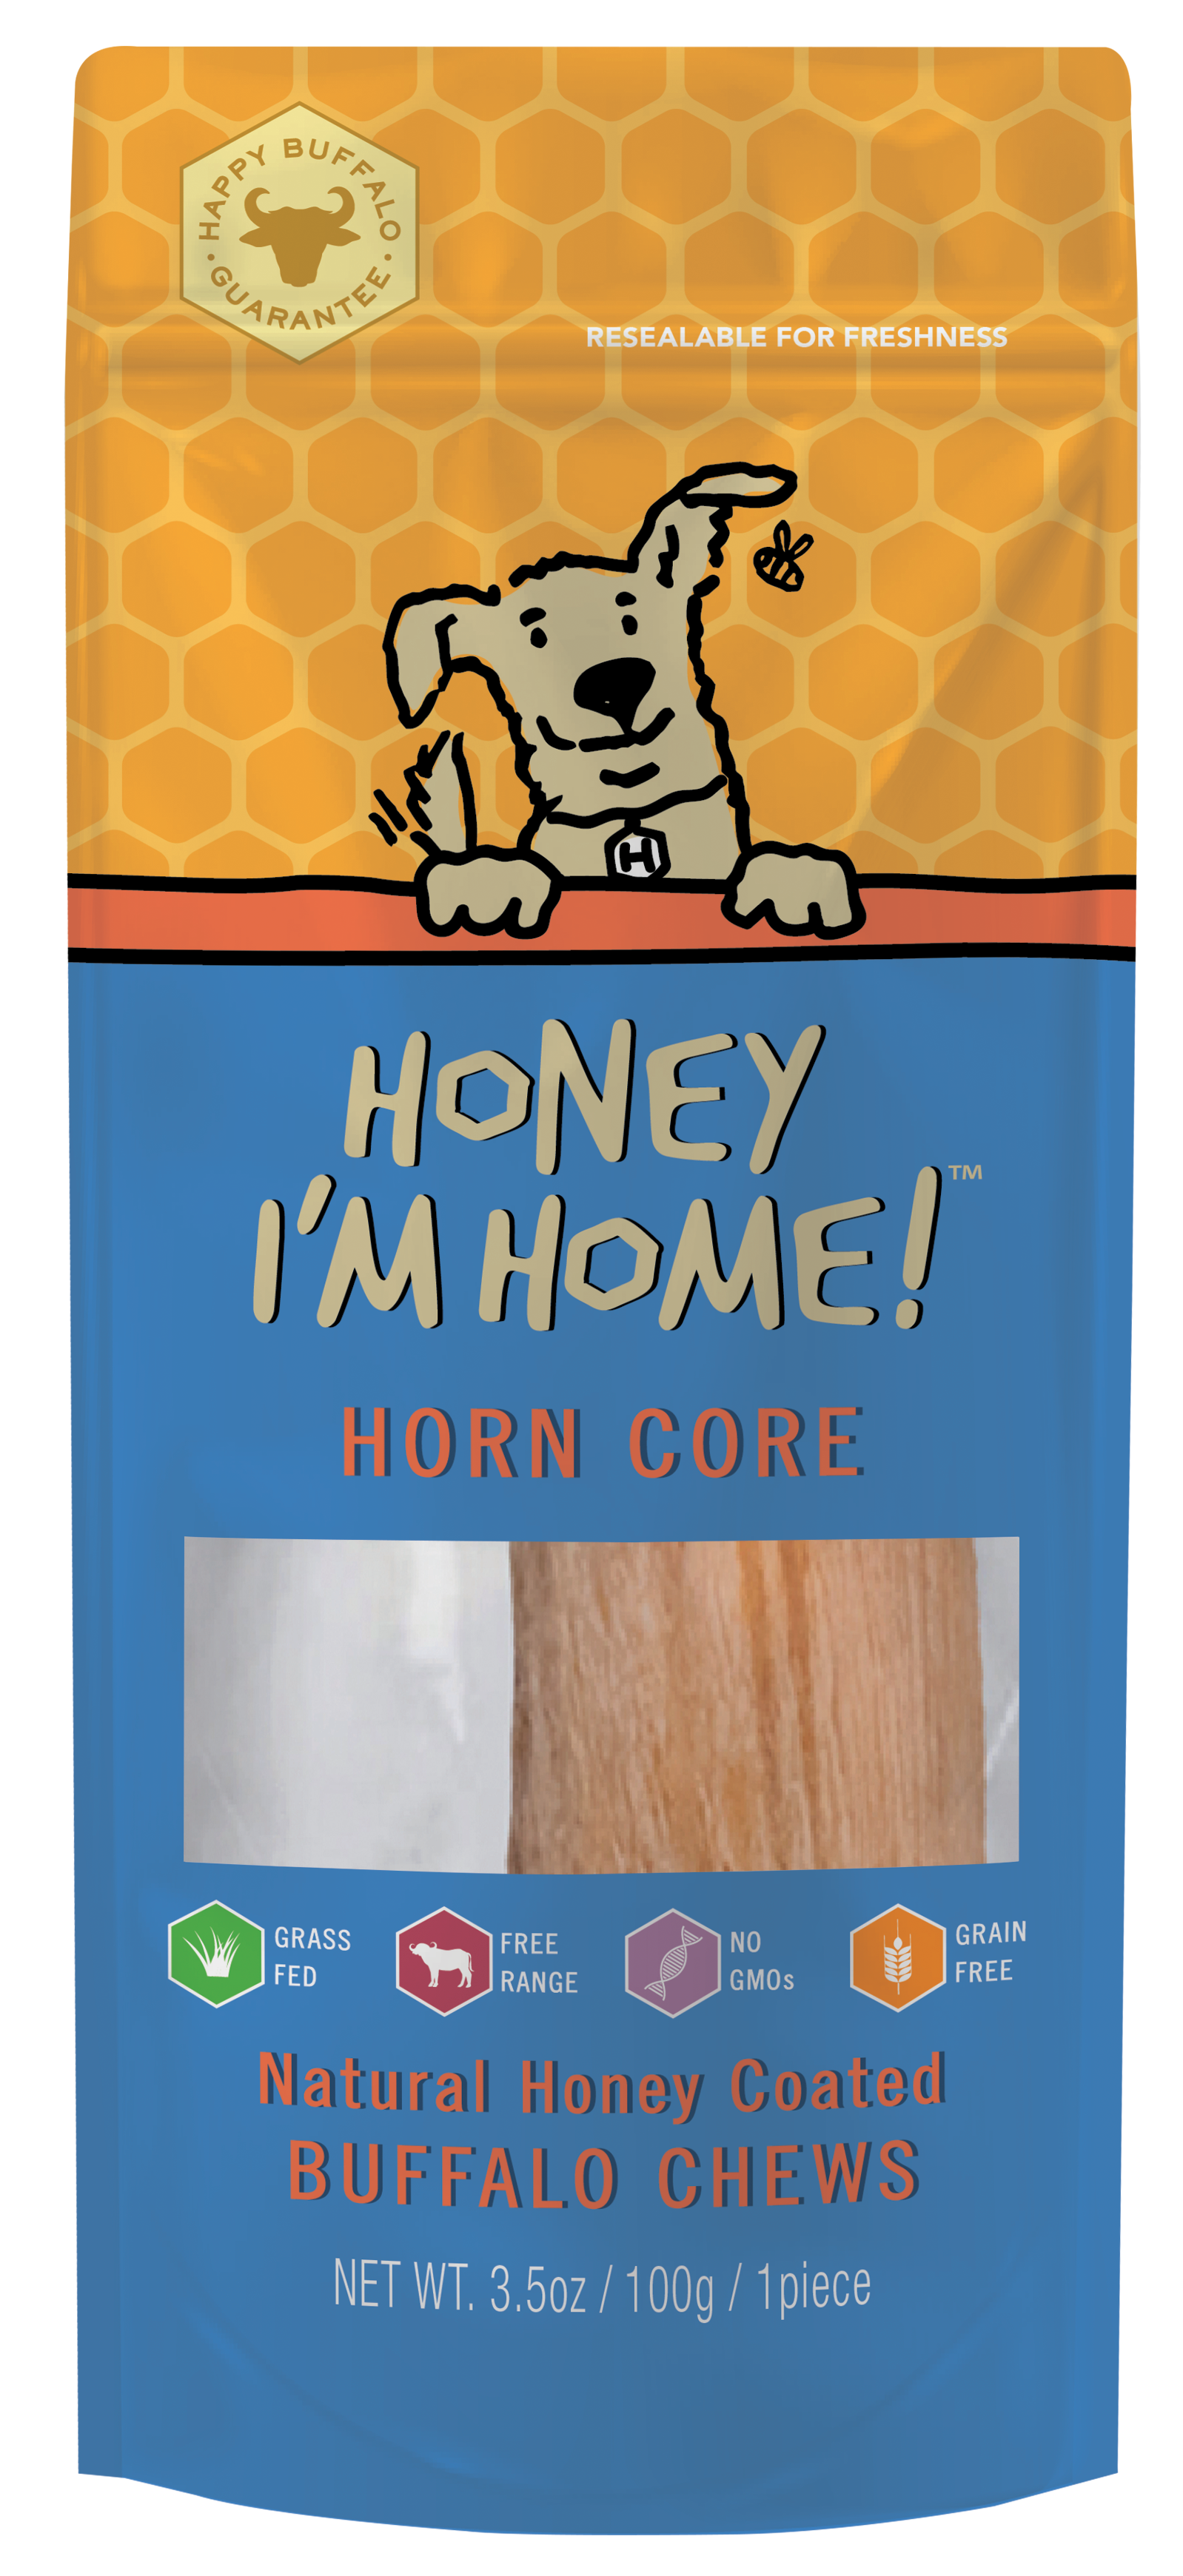 Honey I'm Home Natural Honey Coated Buffalo Horn Core Dog Chews, Individually Wrapped, 1 count